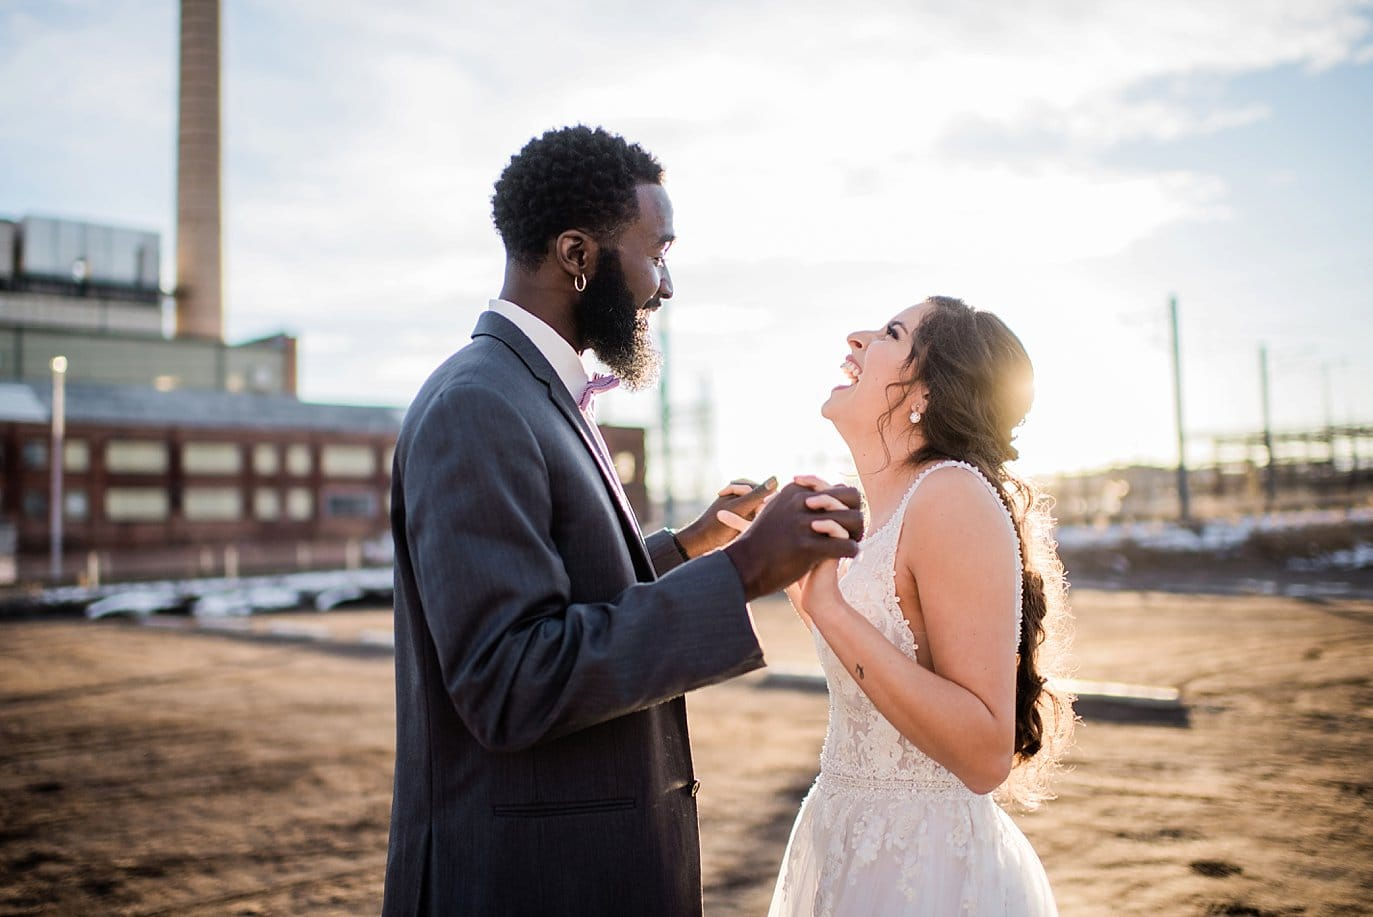 bride and groom laughing in sunset light at Shyft Denver wedding by Lyons wedding photographer Jennie Crate